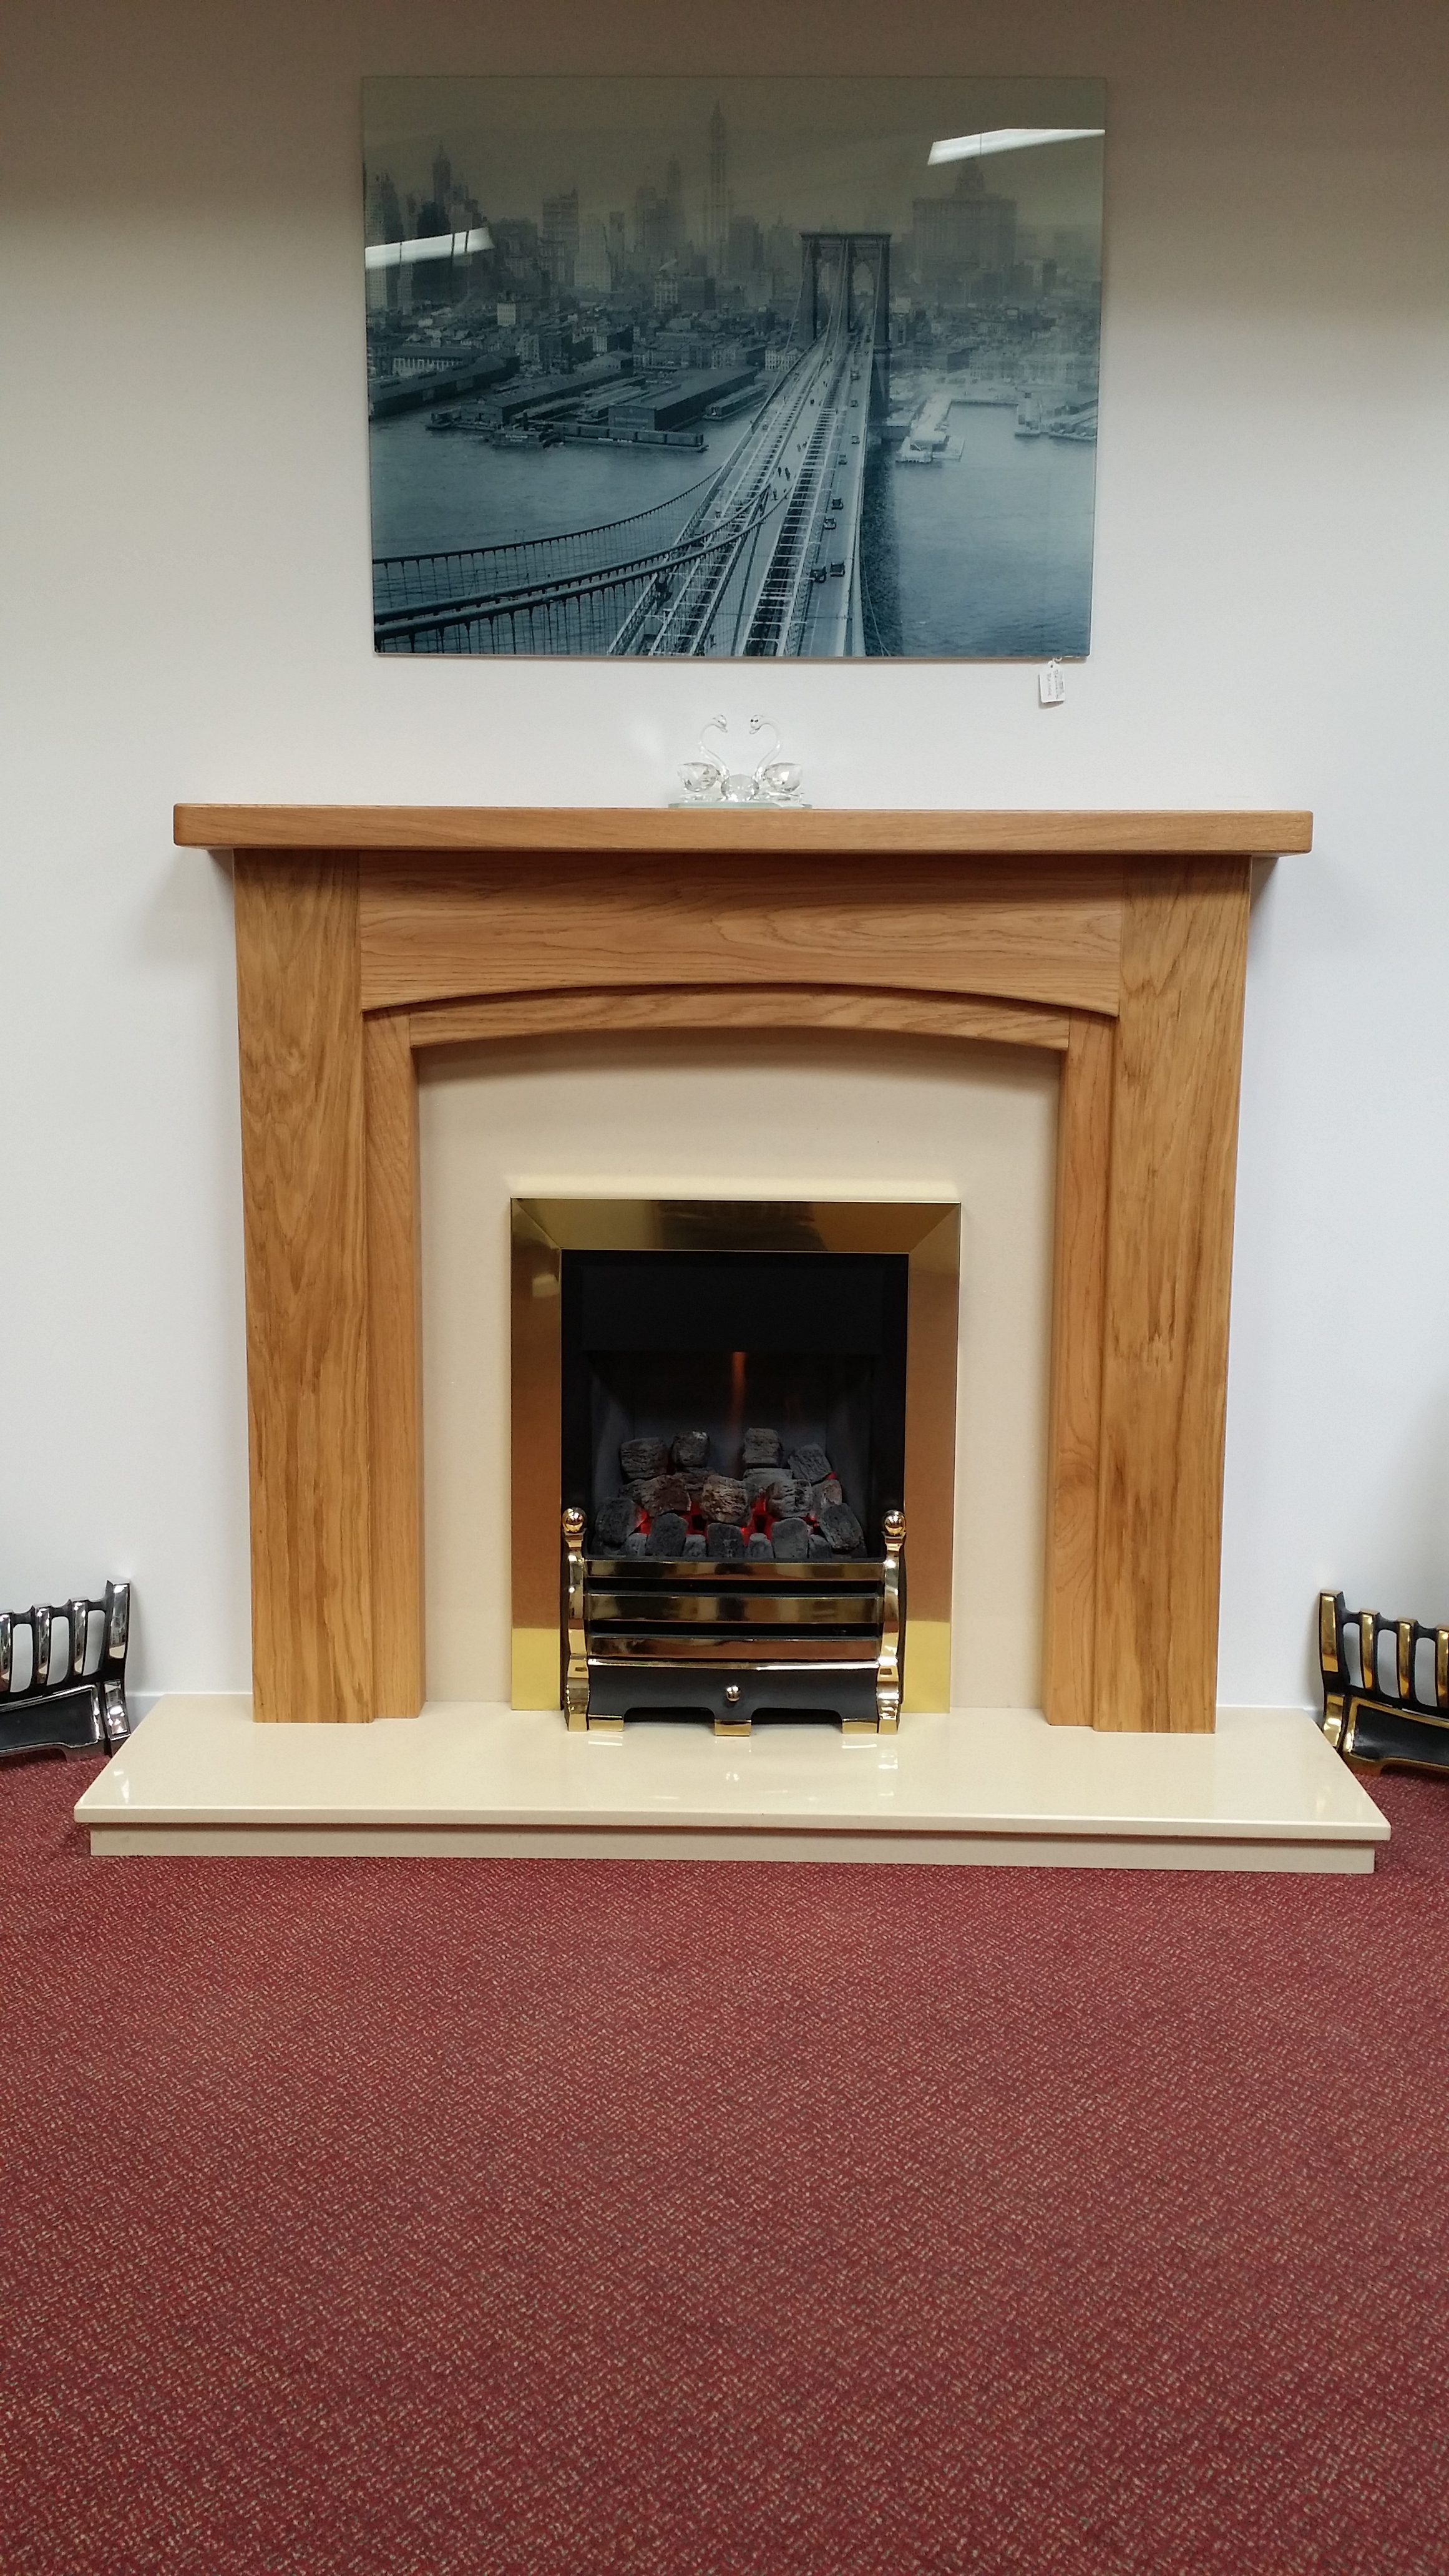 Wood Fireplace Reviews High Efficiency Wood Burning Fireplace Inserts With Blower